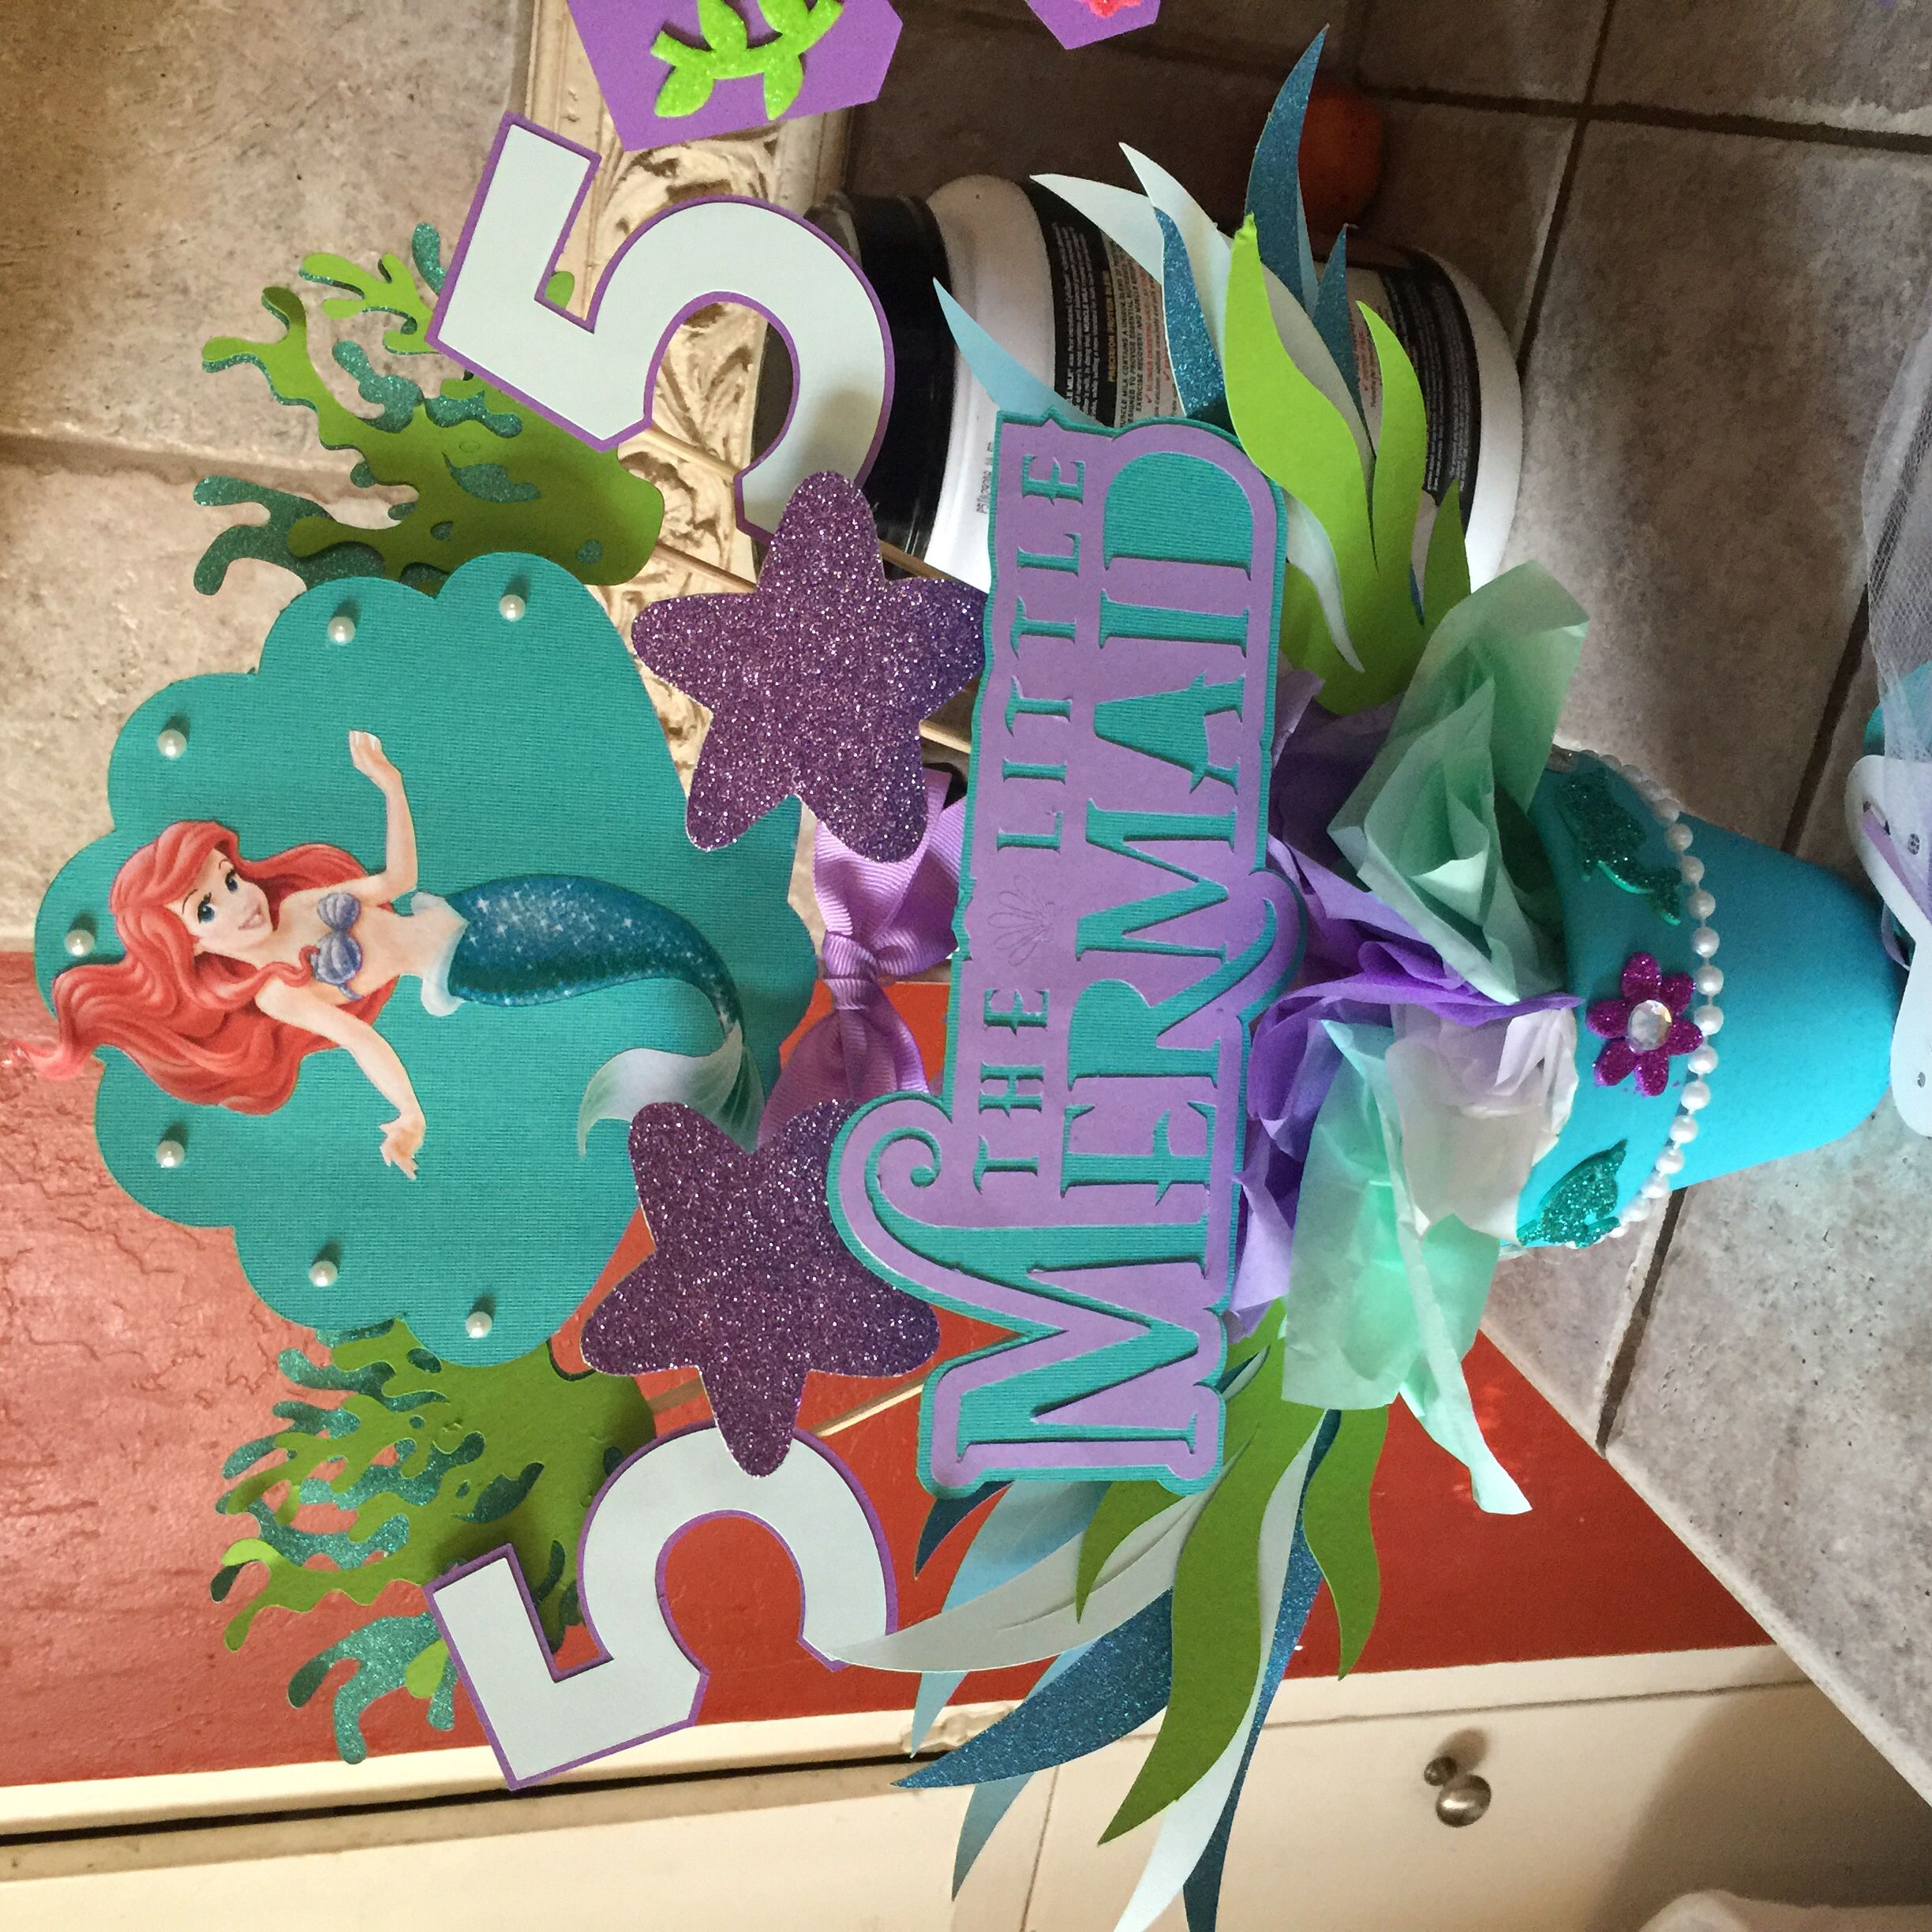 little mermaid centerpiece my baby projects pinterest mermaid centerpieces and mermaid. Black Bedroom Furniture Sets. Home Design Ideas